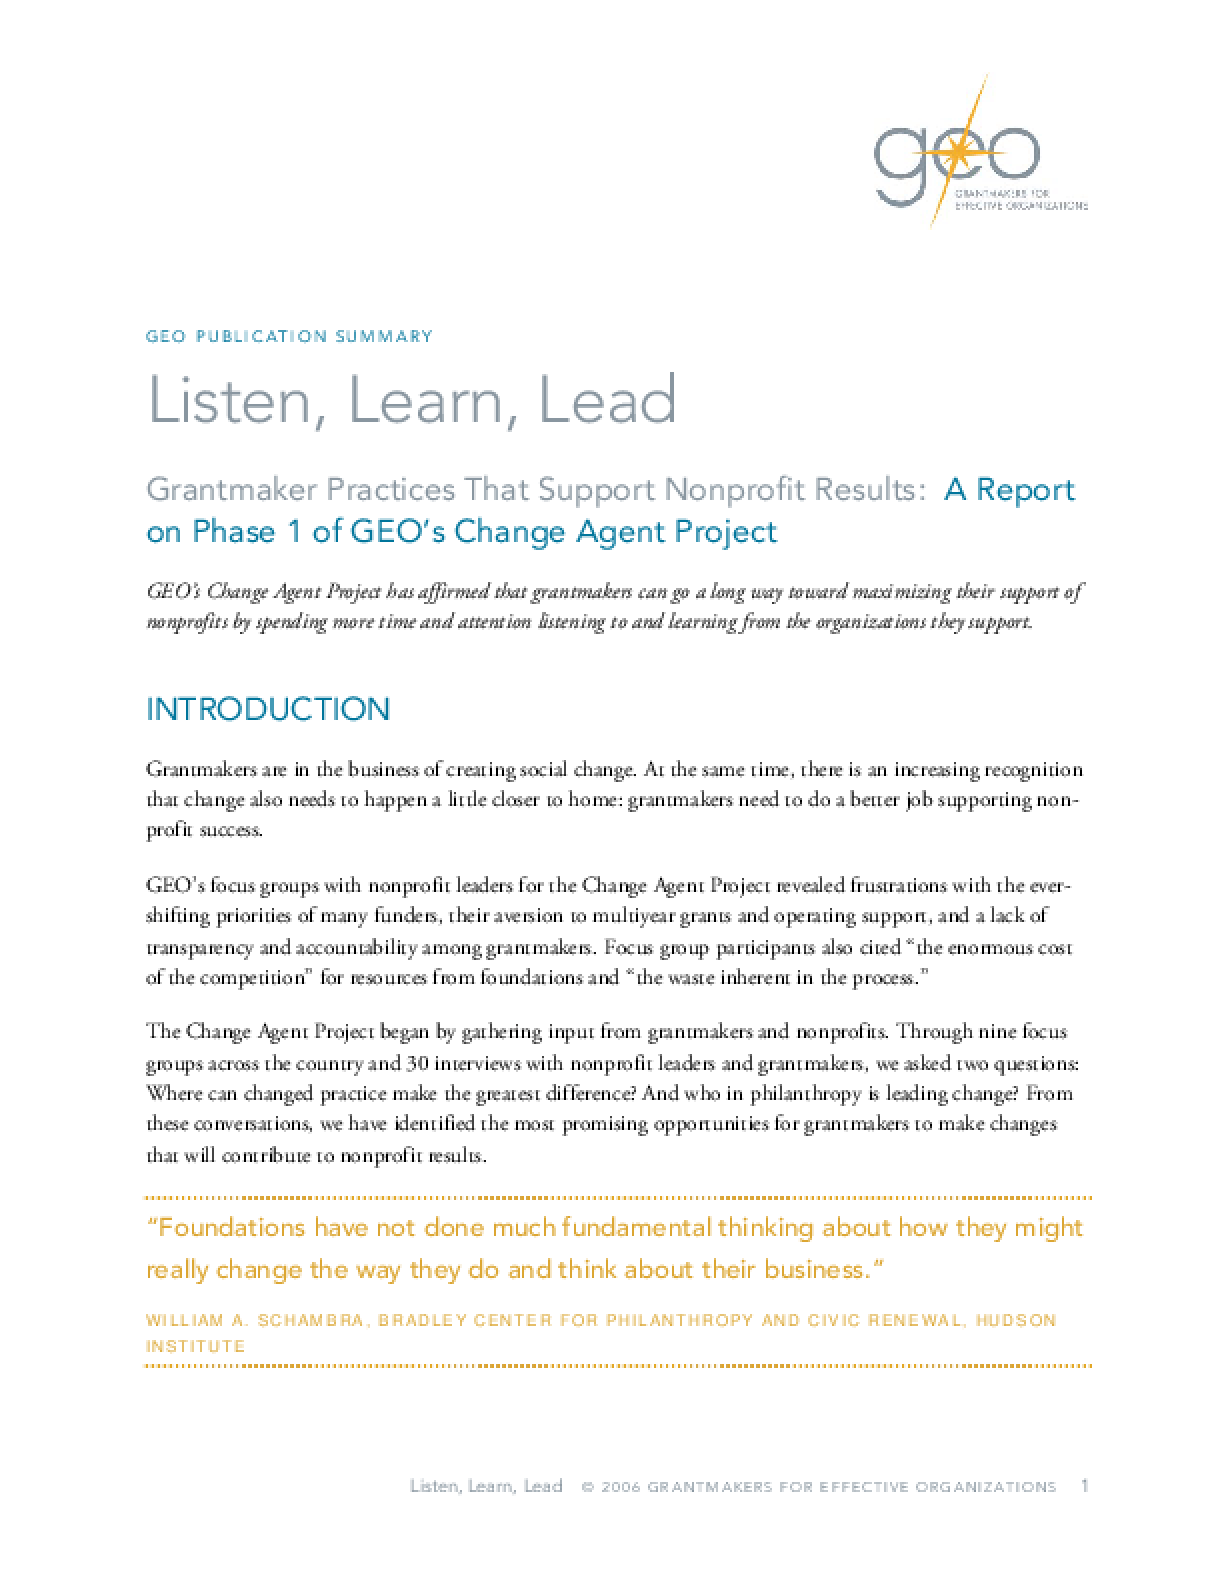 Listen, Learn, Lead: Grantmaker Practices That Support Nonprofit Results: Executive Summary